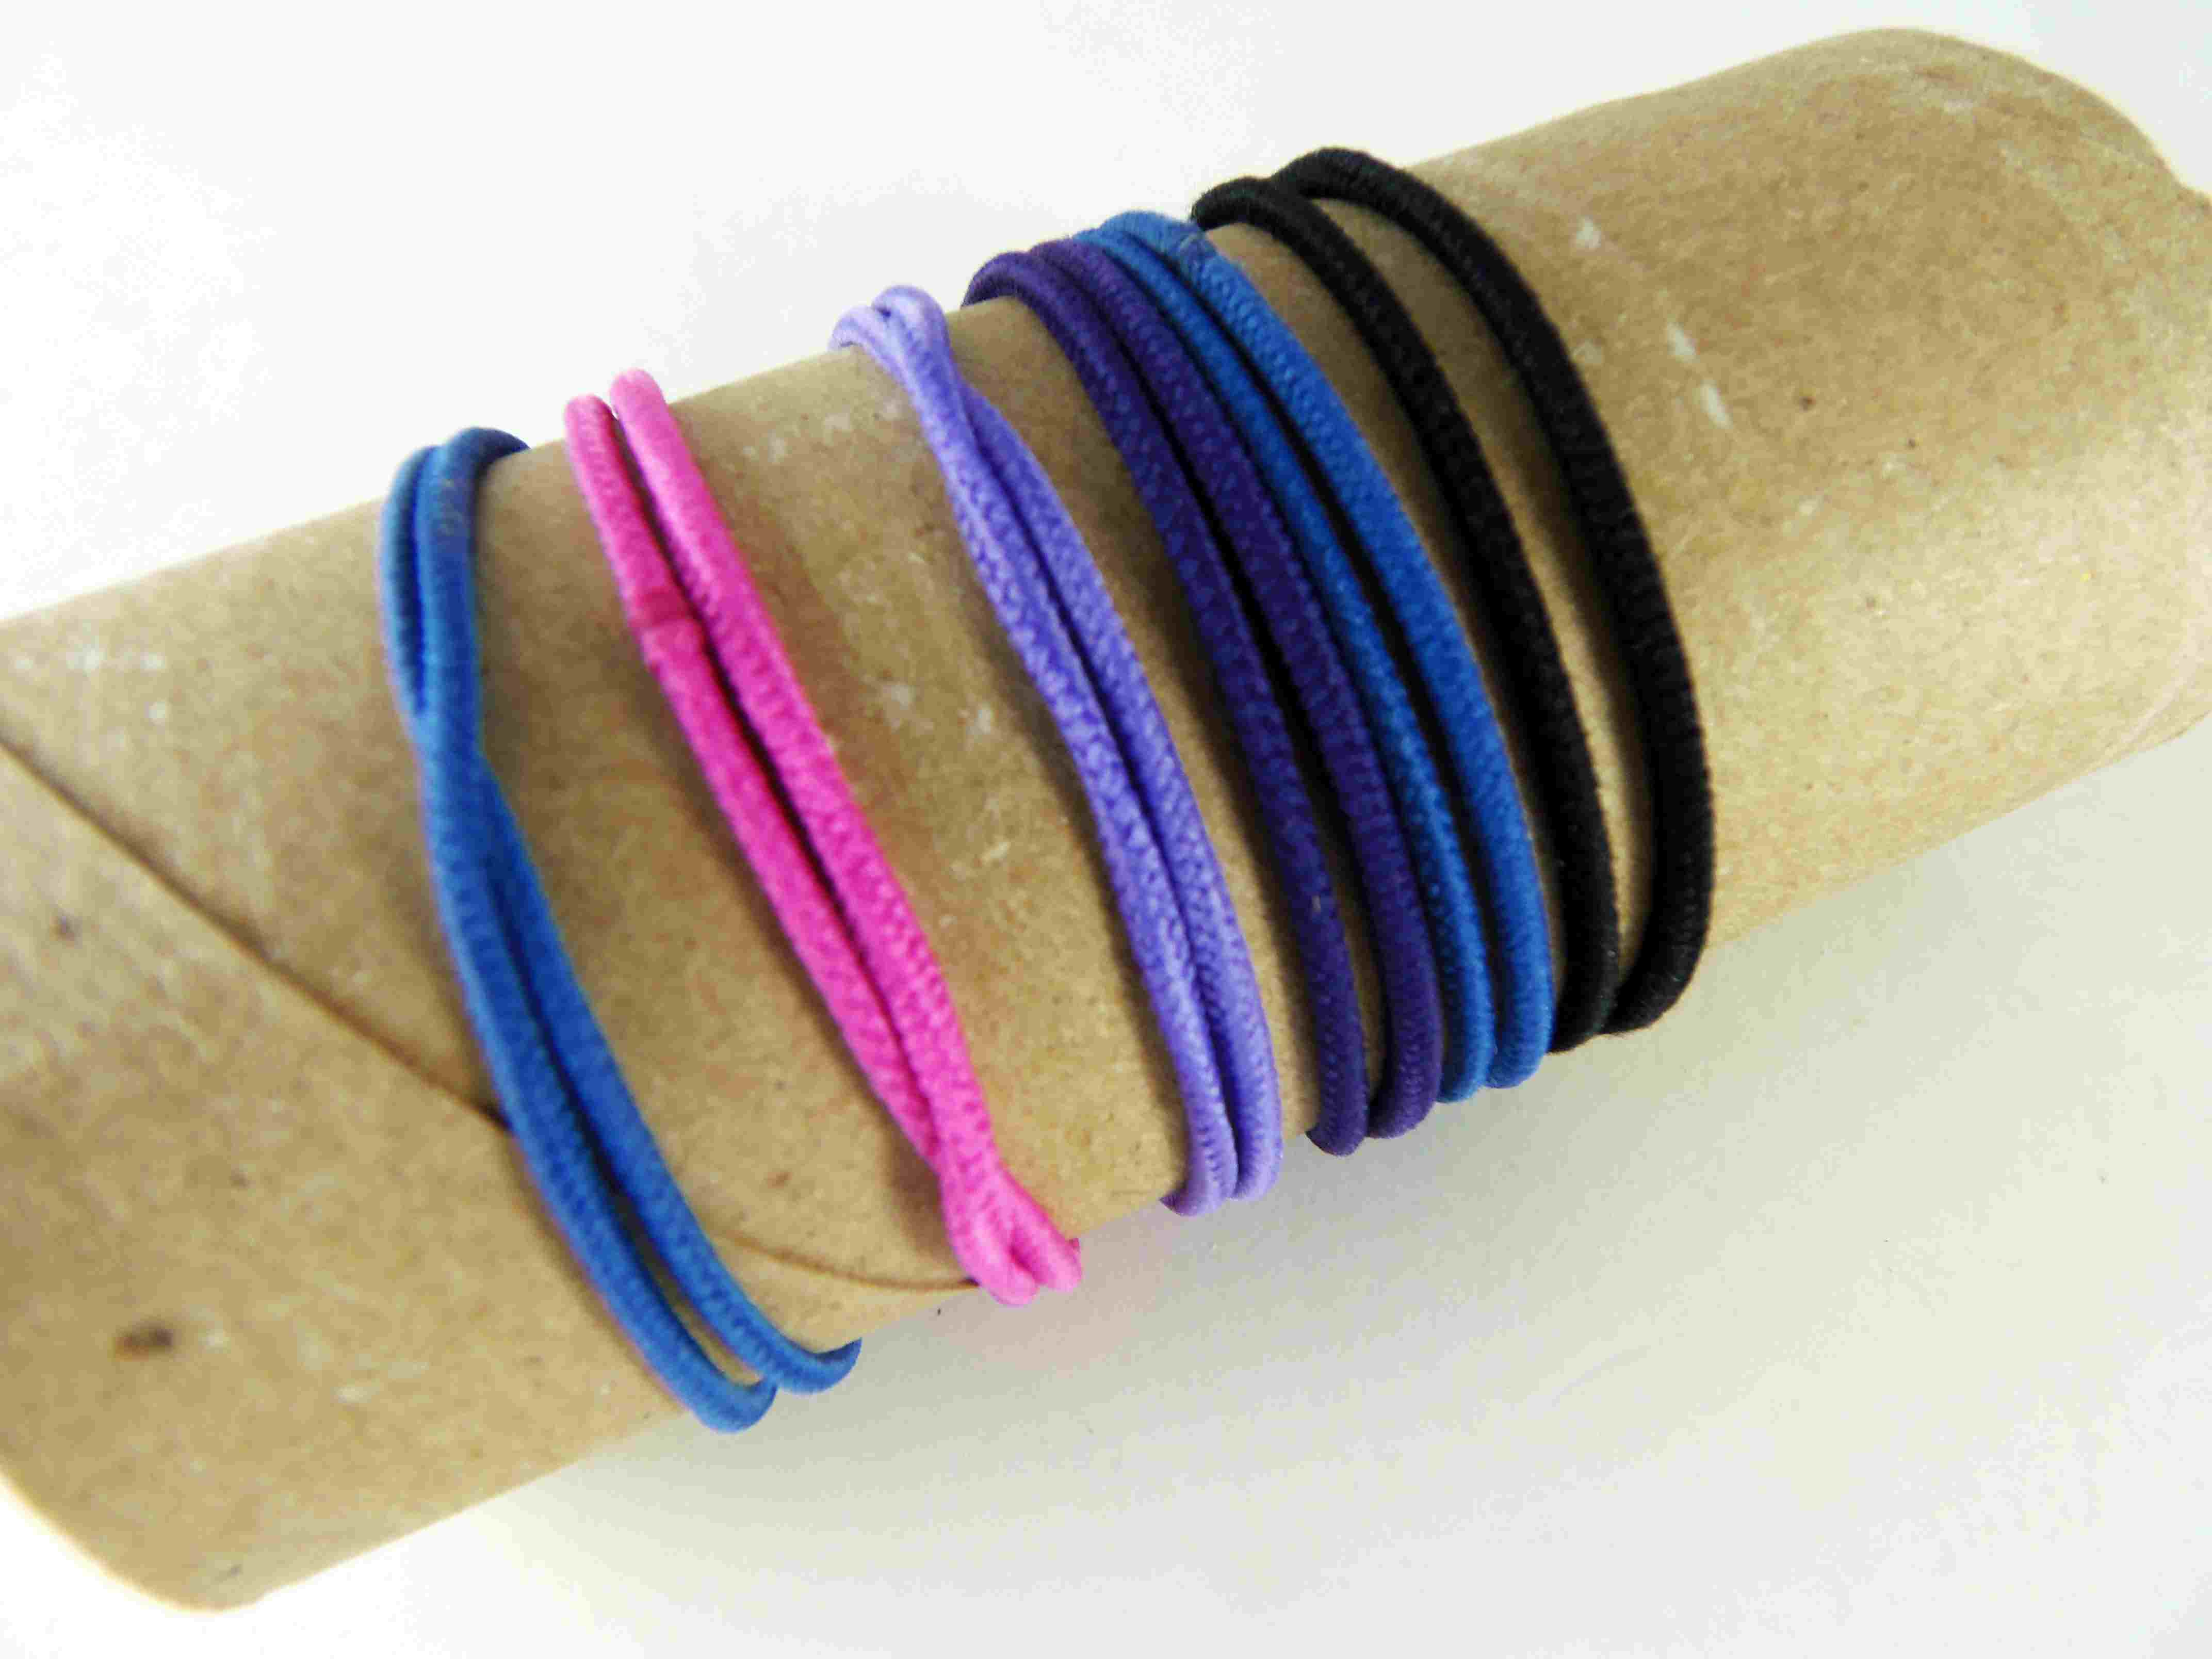 Hair bands on a toilet roll